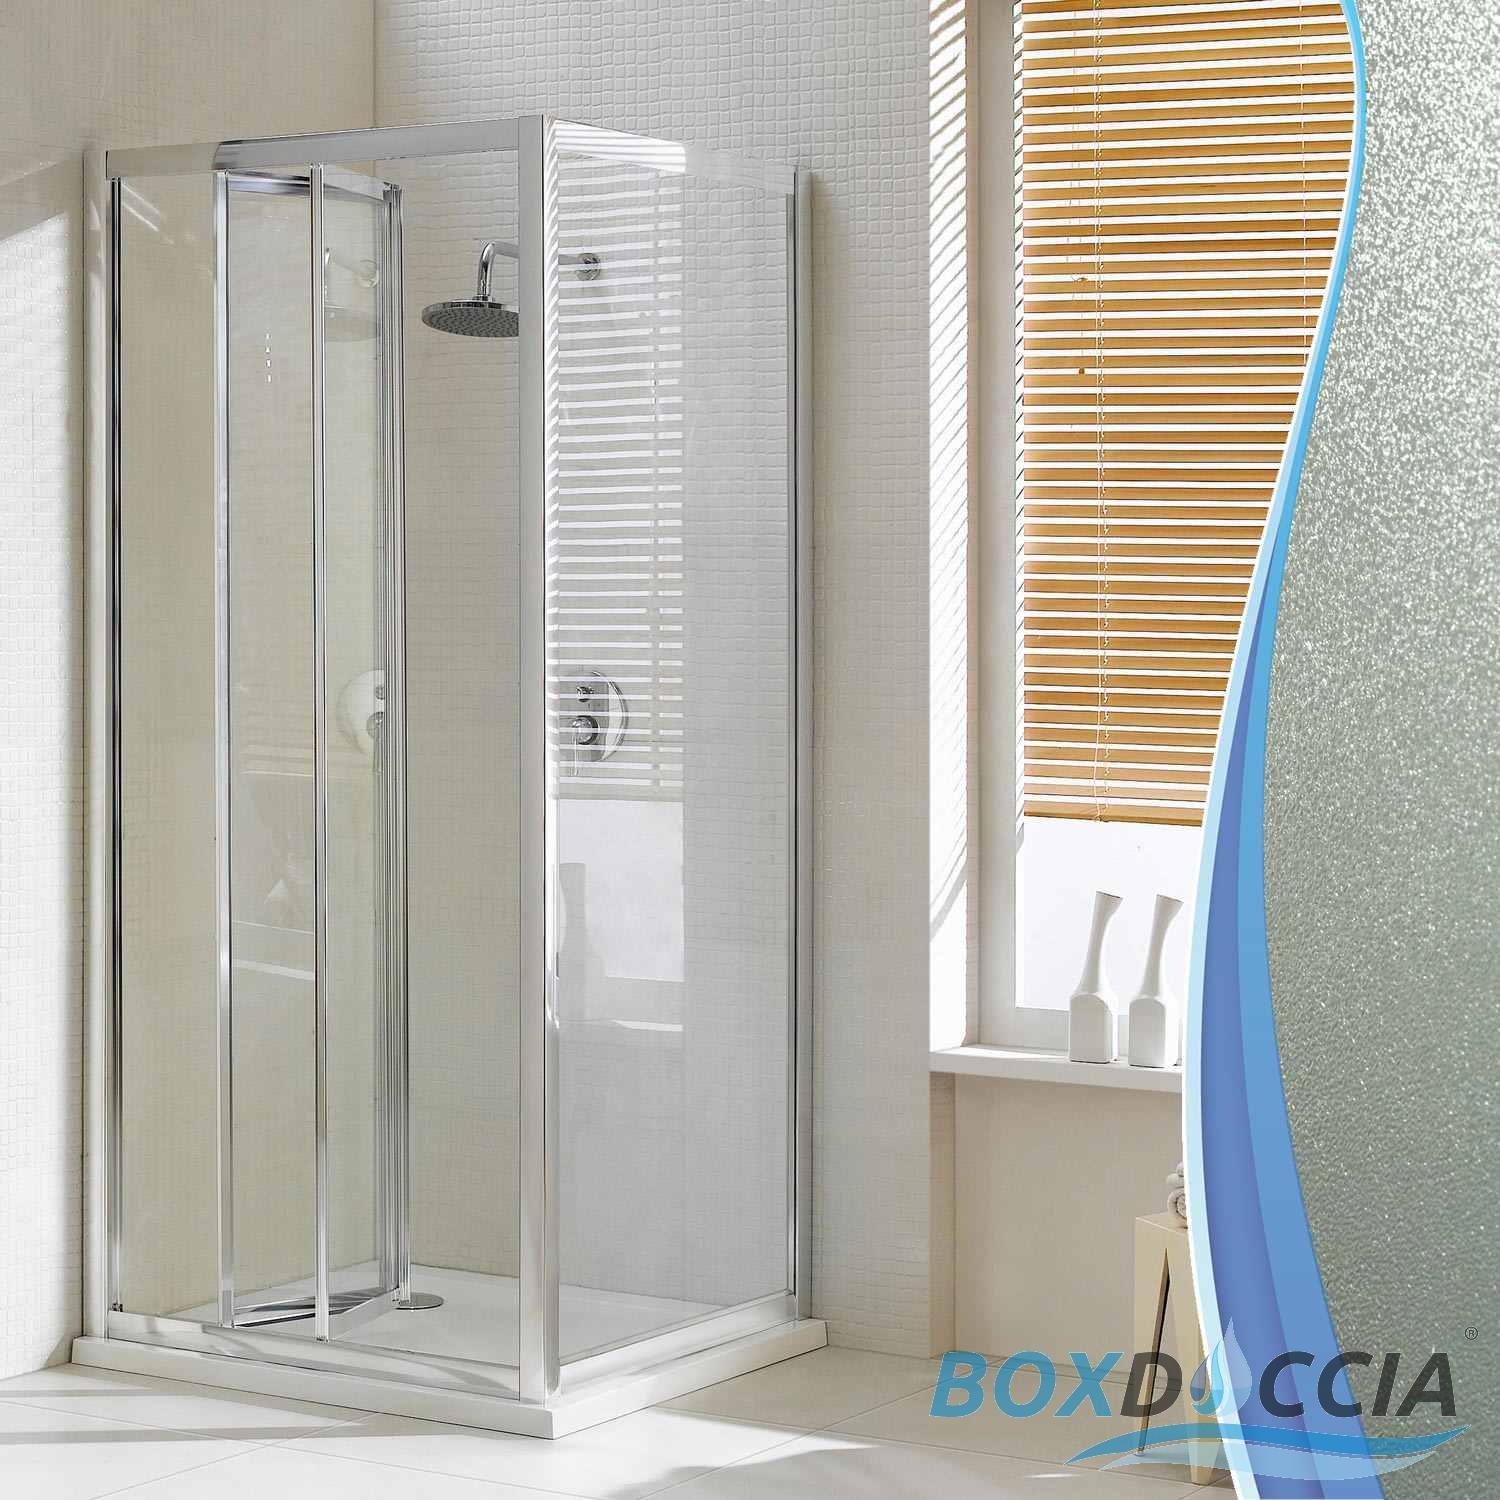 paroi cabine de douche angulaire verre ouverture 1 porte pliante carr italienne ebay. Black Bedroom Furniture Sets. Home Design Ideas